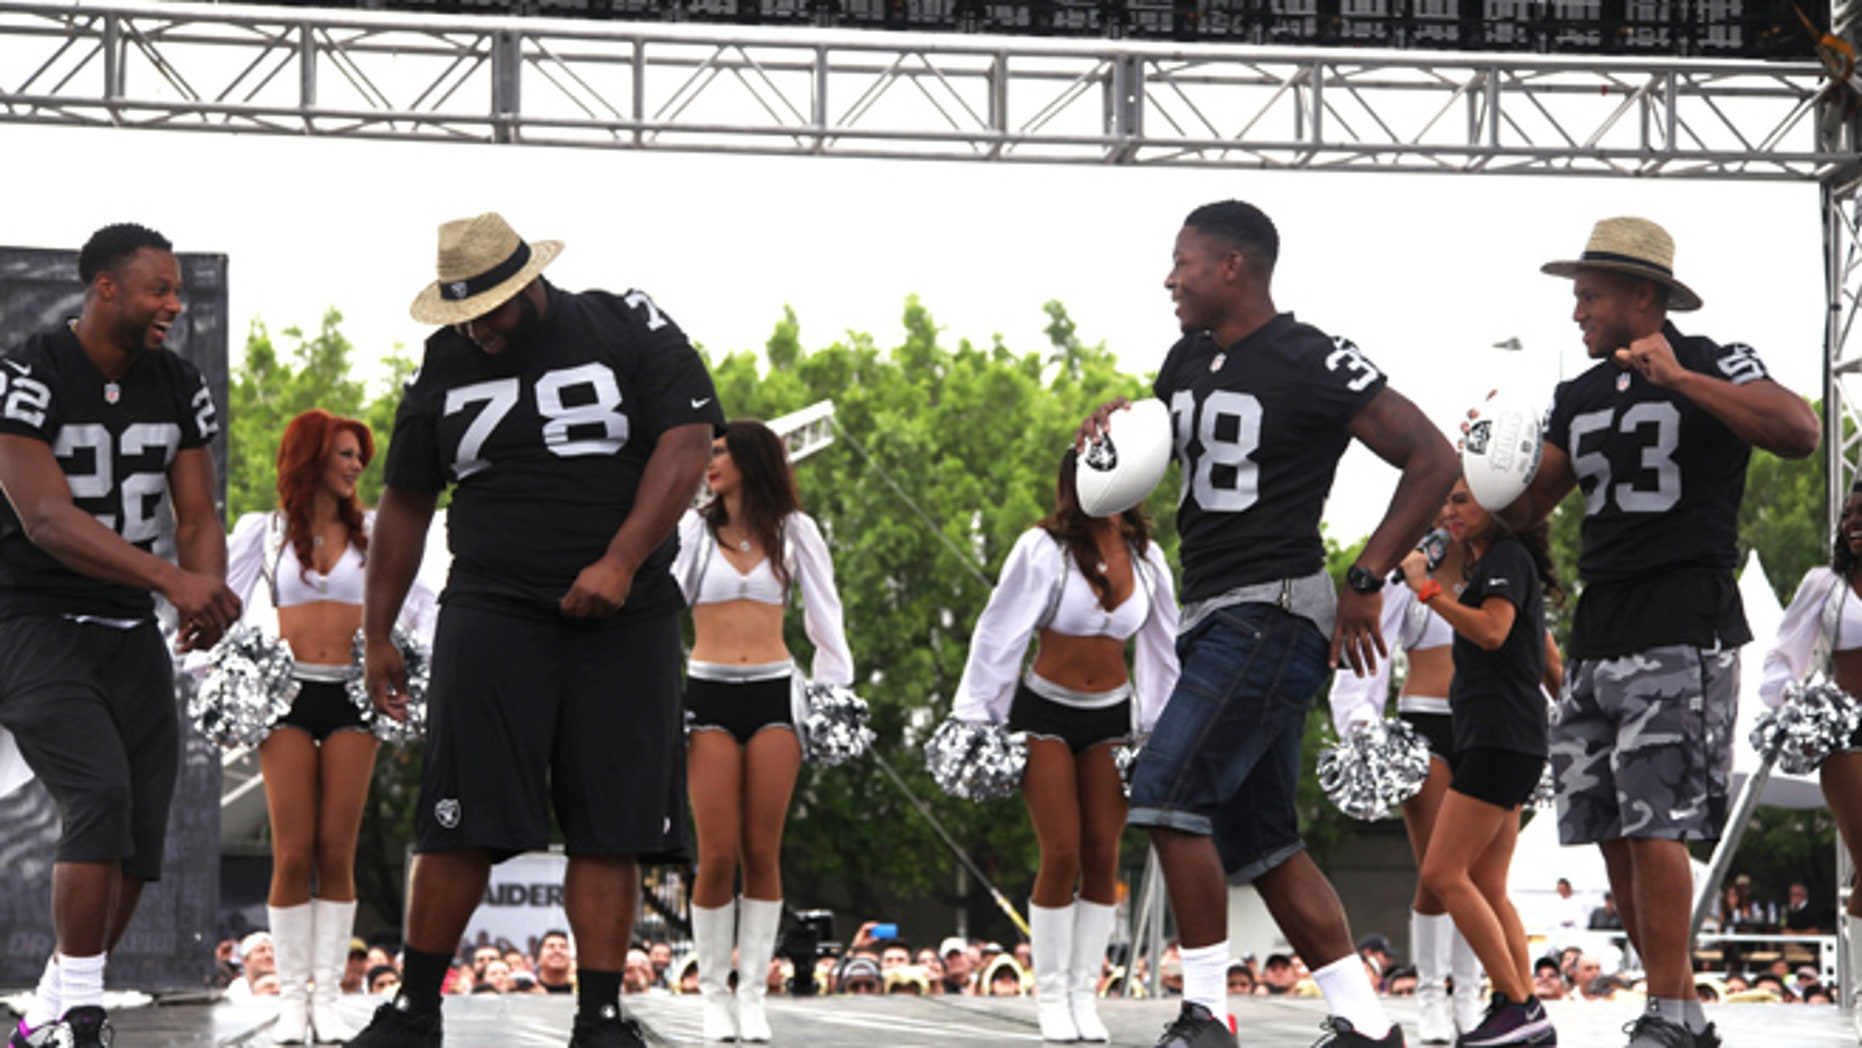 Oakland Raiders players, from left, Taiwan Jones (22), Justin Ellis (78), T.J. Carrie (38) and Malcolm Smith (53) dance before fans at Azteca Stadium where the team announced their third day NFL picks in Mexico City, Saturday, April 30, 2016. The Raiders will play the Houston Texans at Azteca on Nov. 21, 2016 during the NFL regular season. (AP Photo/Marco Ugarte)